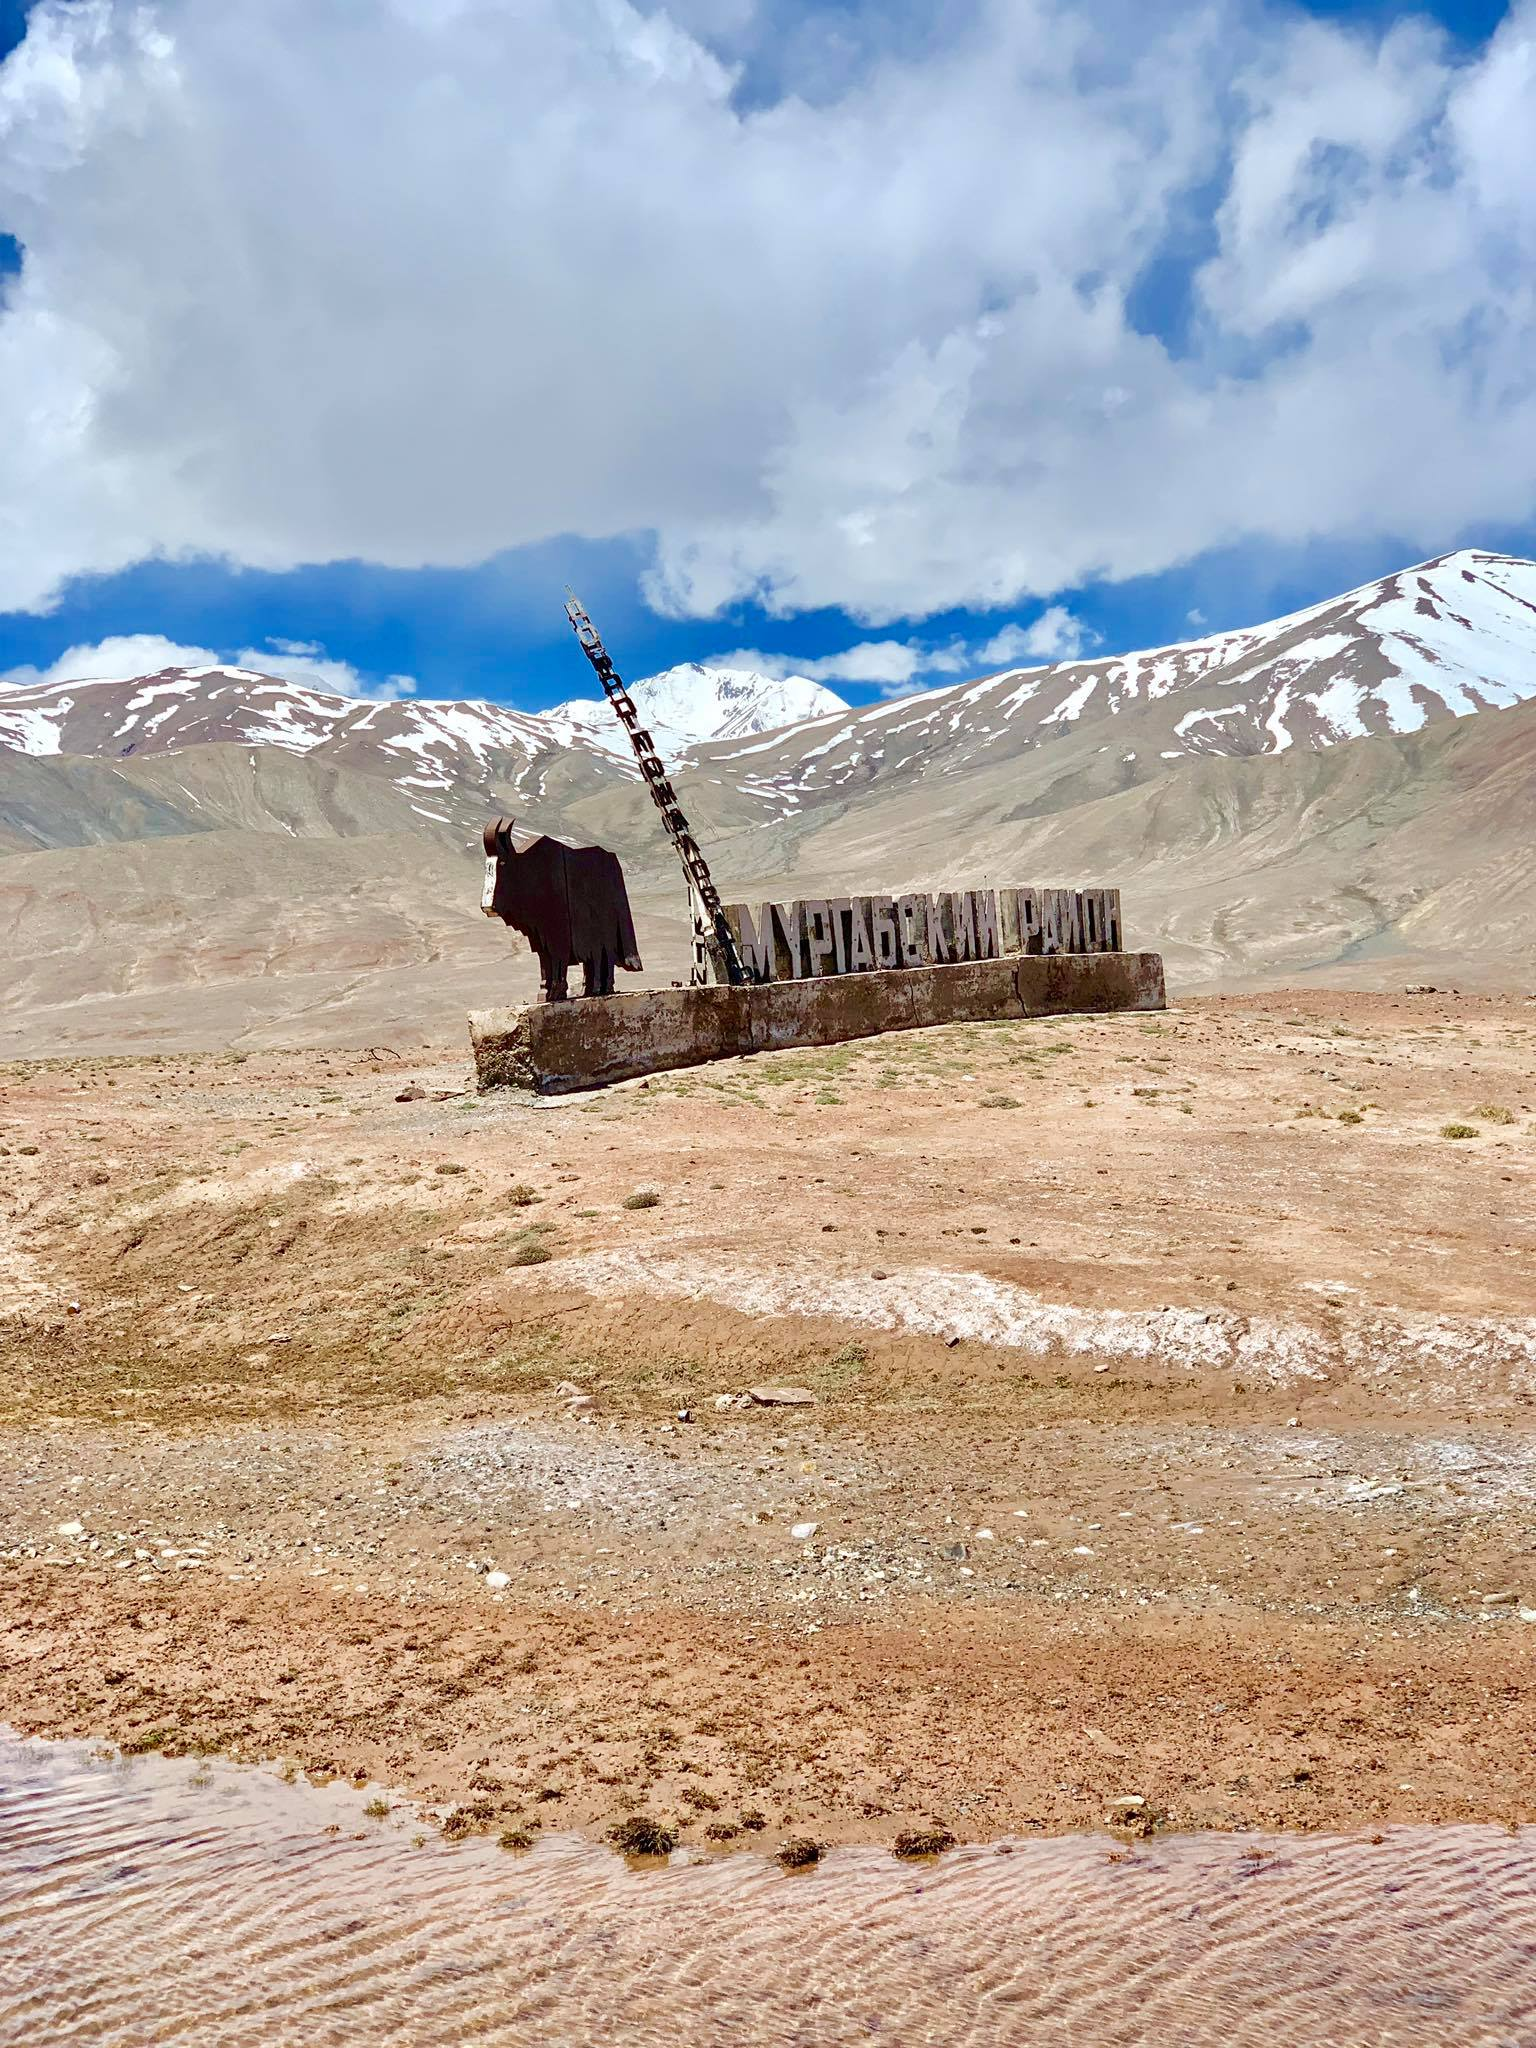 Kach Solo Travels in 2019 Hello from KYRGYZSTAN, my 128th country26.jpg